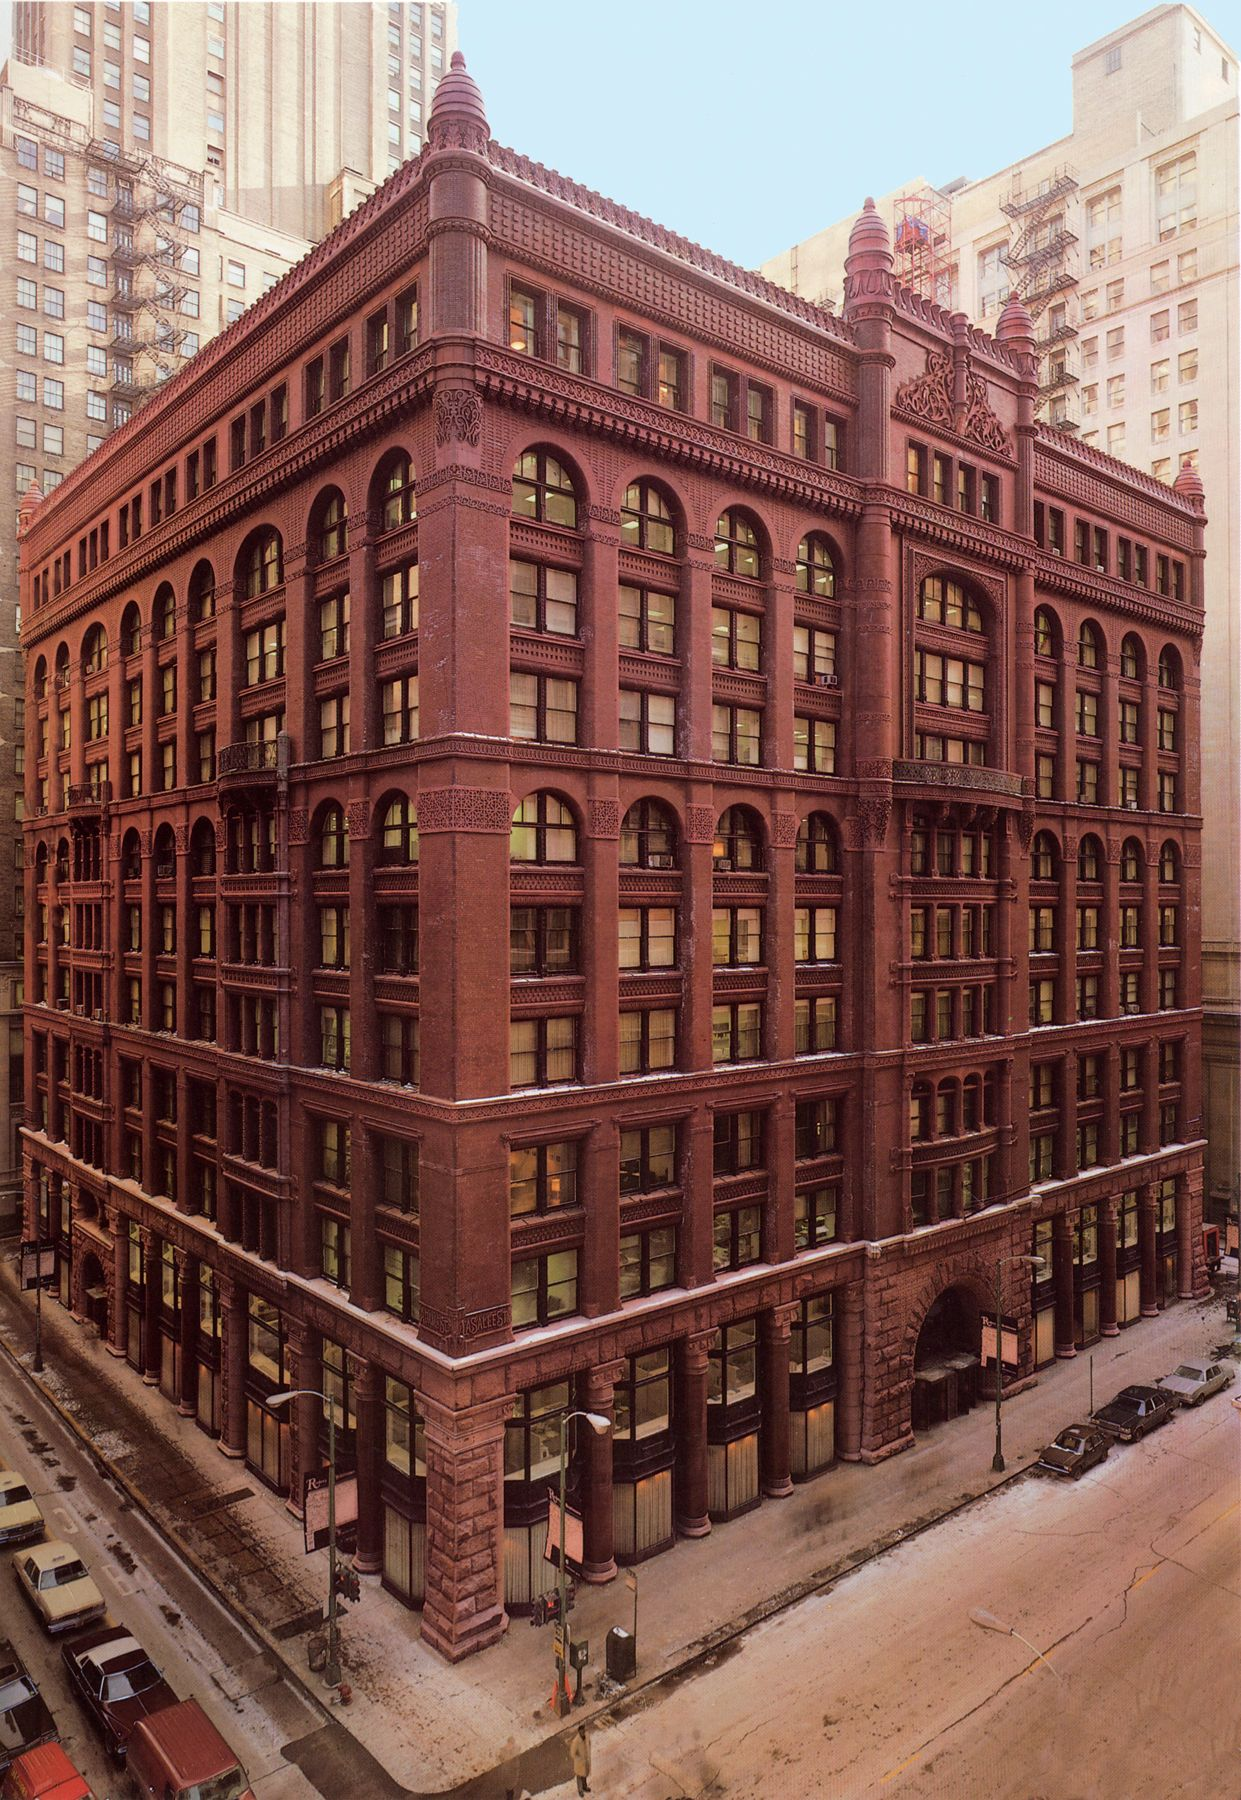 Burnham & Root's Rookery in Chicago. Recently made famous